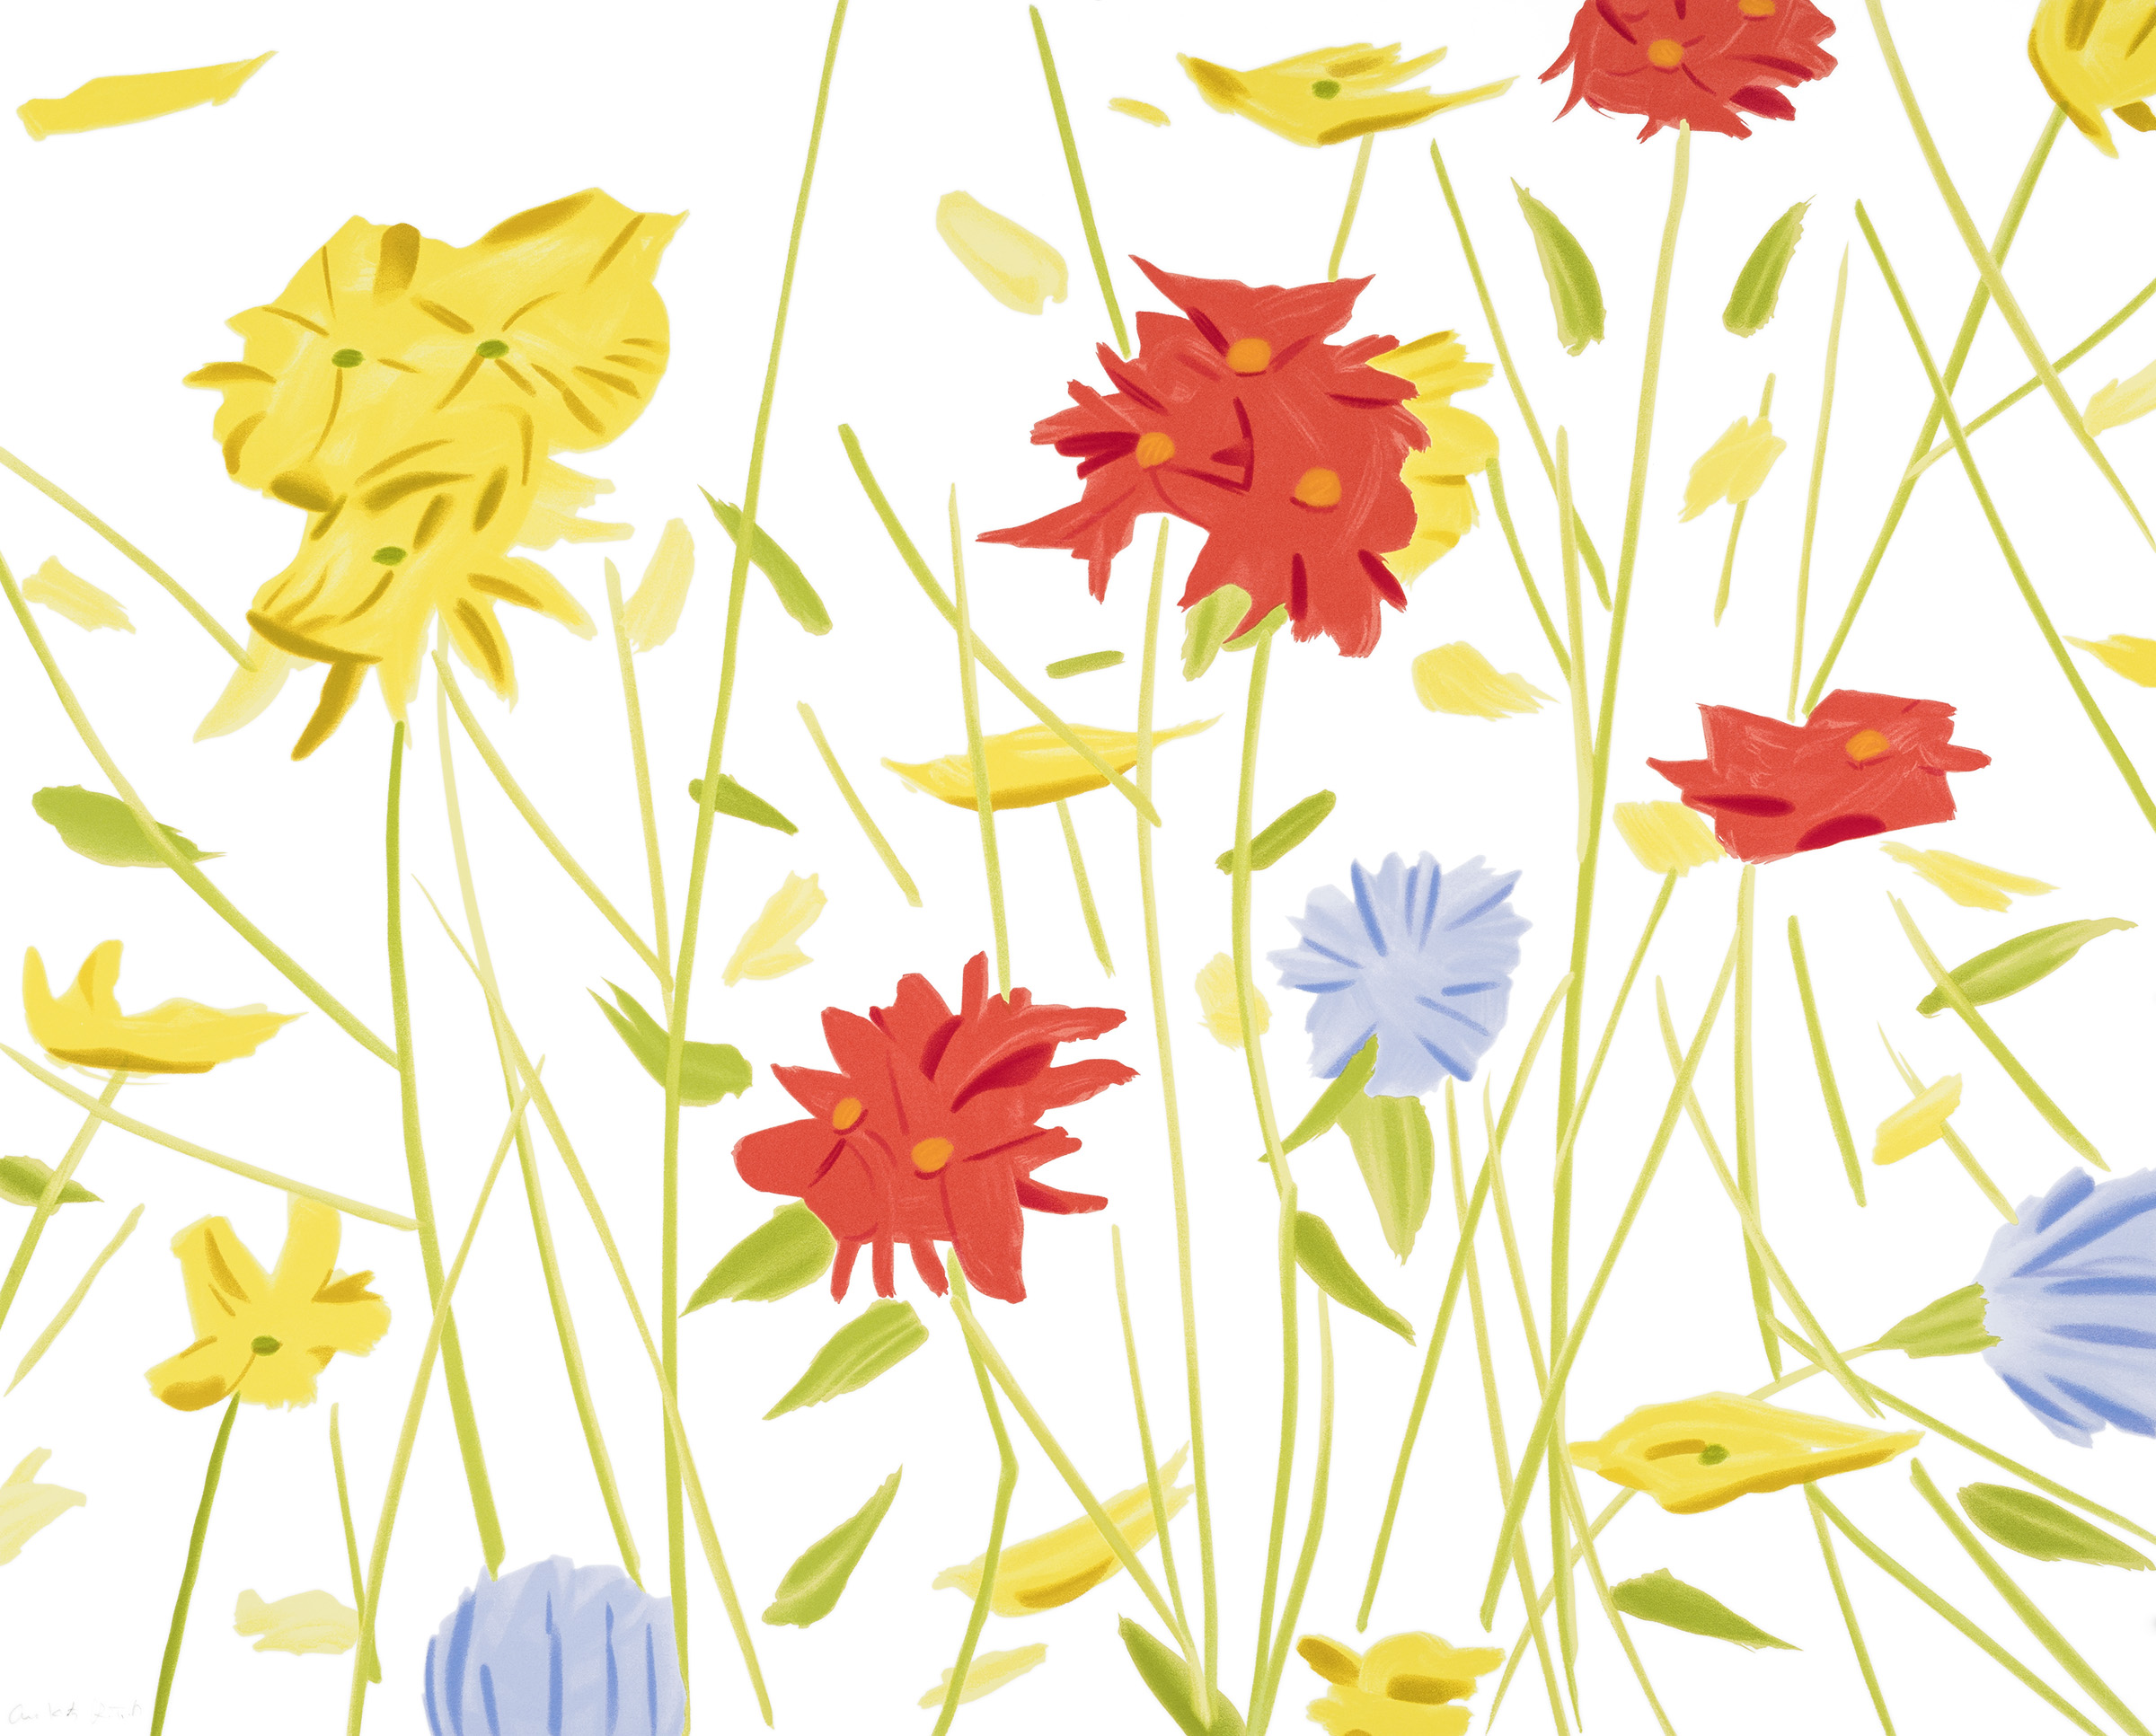 "Alex Katz  Wildflowers , 2017                         Normal     0                     false     false     false         EN-US     X-NONE     X-NONE                                                                                                                                                                                                                                                                                                                                                                                                                                                                                                                                                                                                                                                                                                                                                                                                                                                                                                                                                                                                                                                                                                                                                                                                                                                                                                                                                                                                                                                                                                                                                                                                                                                                                                     /* Style Definitions */  table.MsoNormalTable 	{mso-style-name:""Table Normal""; 	mso-tstyle-rowband-size:0; 	mso-tstyle-colband-size:0; 	mso-style-noshow:yes; 	mso-style-priority:99; 	mso-style-parent:""""; 	mso-padding-alt:0in 5.4pt 0in 5.4pt; 	mso-para-margin:0in; 	mso-para-margin-bottom:.0001pt; 	mso-pagination:widow-orphan; 	font-size:12.0pt; 	font-family:""Calibri"",sans-serif; 	mso-ascii-font-family:Calibri; 	mso-ascii-theme-font:minor-latin; 	mso-hansi-font-family:Calibri; 	mso-hansi-theme-font:minor-latin; 	mso-bidi-font-family:""Times New Roman""; 	mso-bidi-theme-font:minor-bidi;}     21-color silkscreen on Saunders Waterford 425 gsm paper 40 x 50 in."